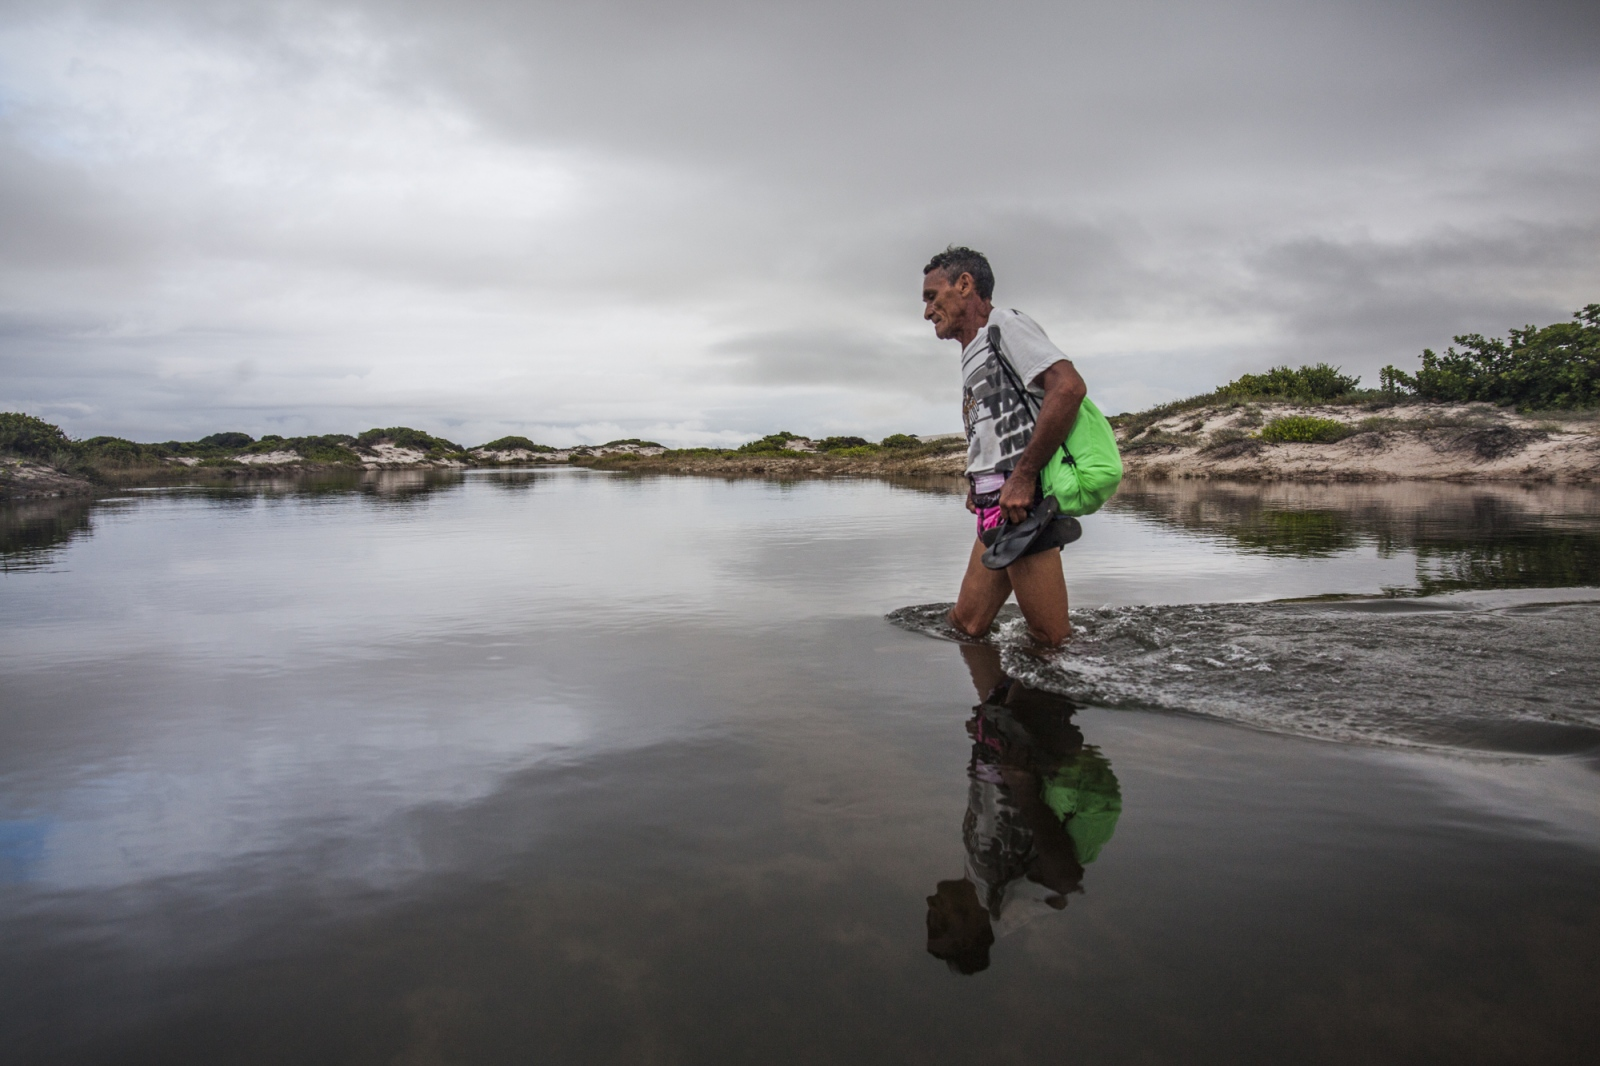 Eduardo, one of the  temporary residents that comes and goes from Queimada dos Britos, crosses a lagoon during his 4 hours walk to the closest village of Sucuruju. He is going to pick-up medicine from a friend of the Brito's family.